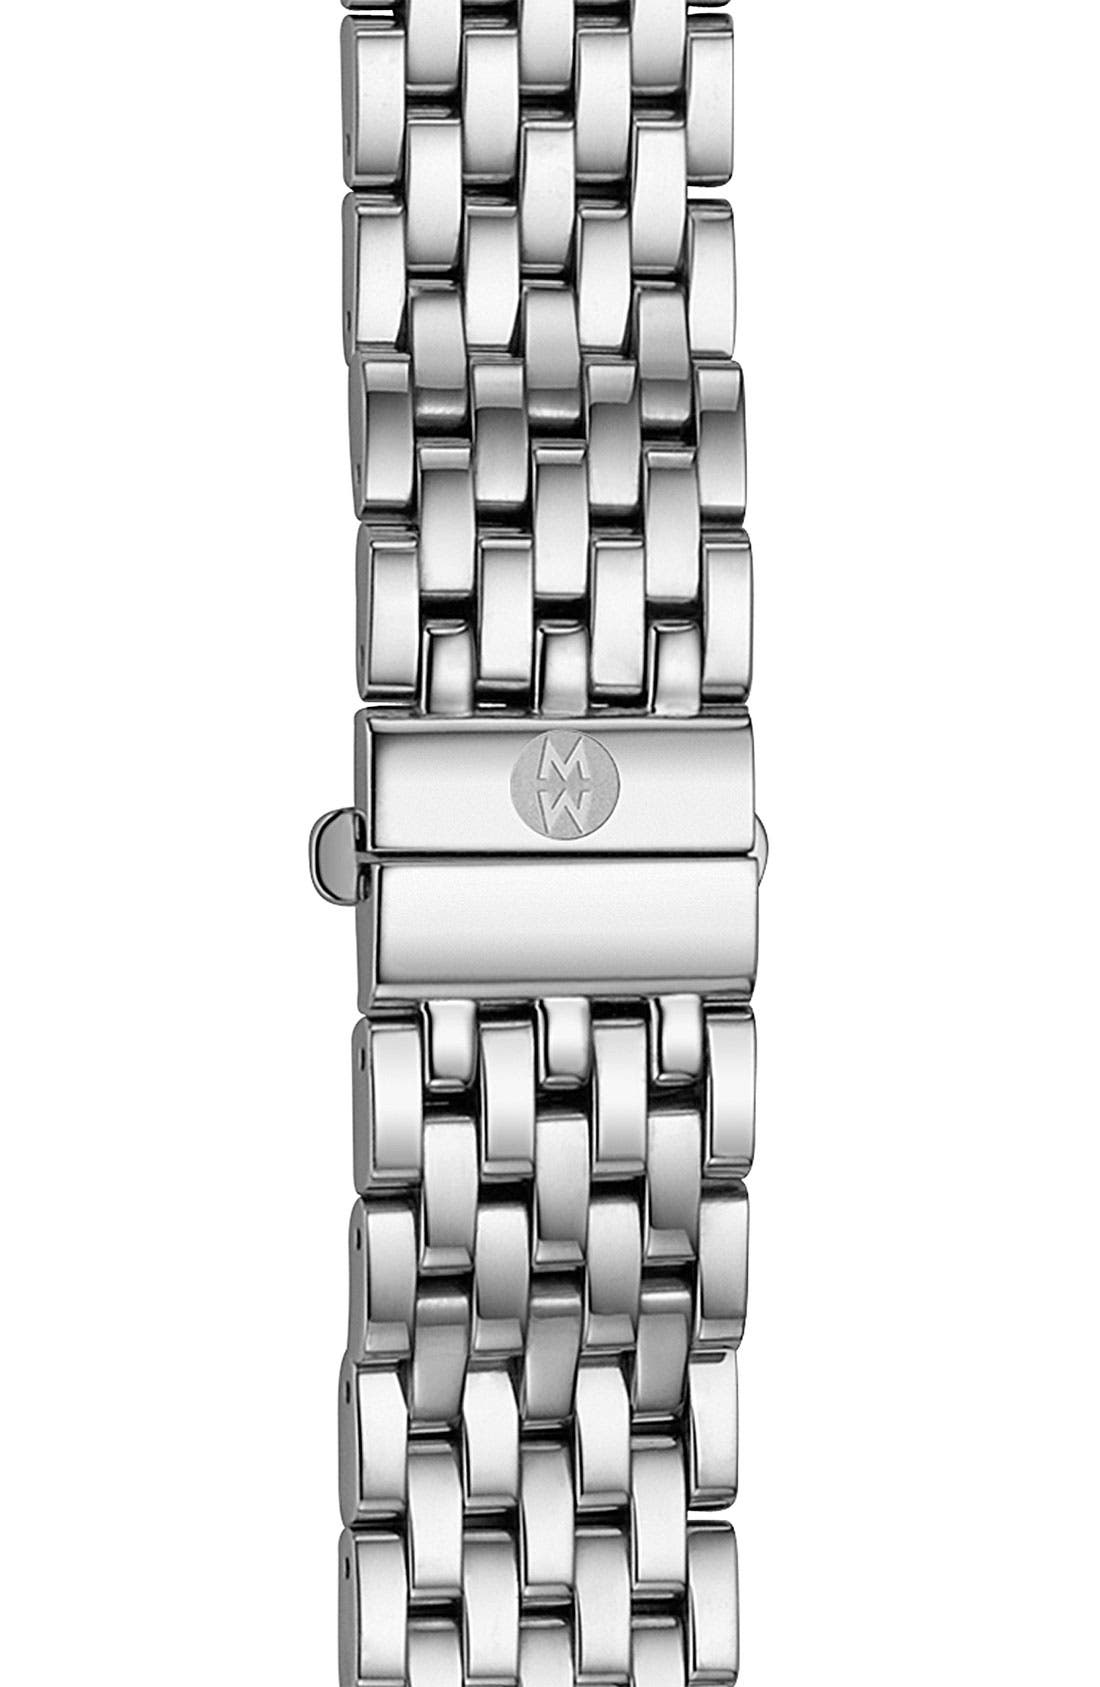 Alternate Image 1 Selected - MICHELE 'Cloette Fleur' 16mm Watch Bracelet